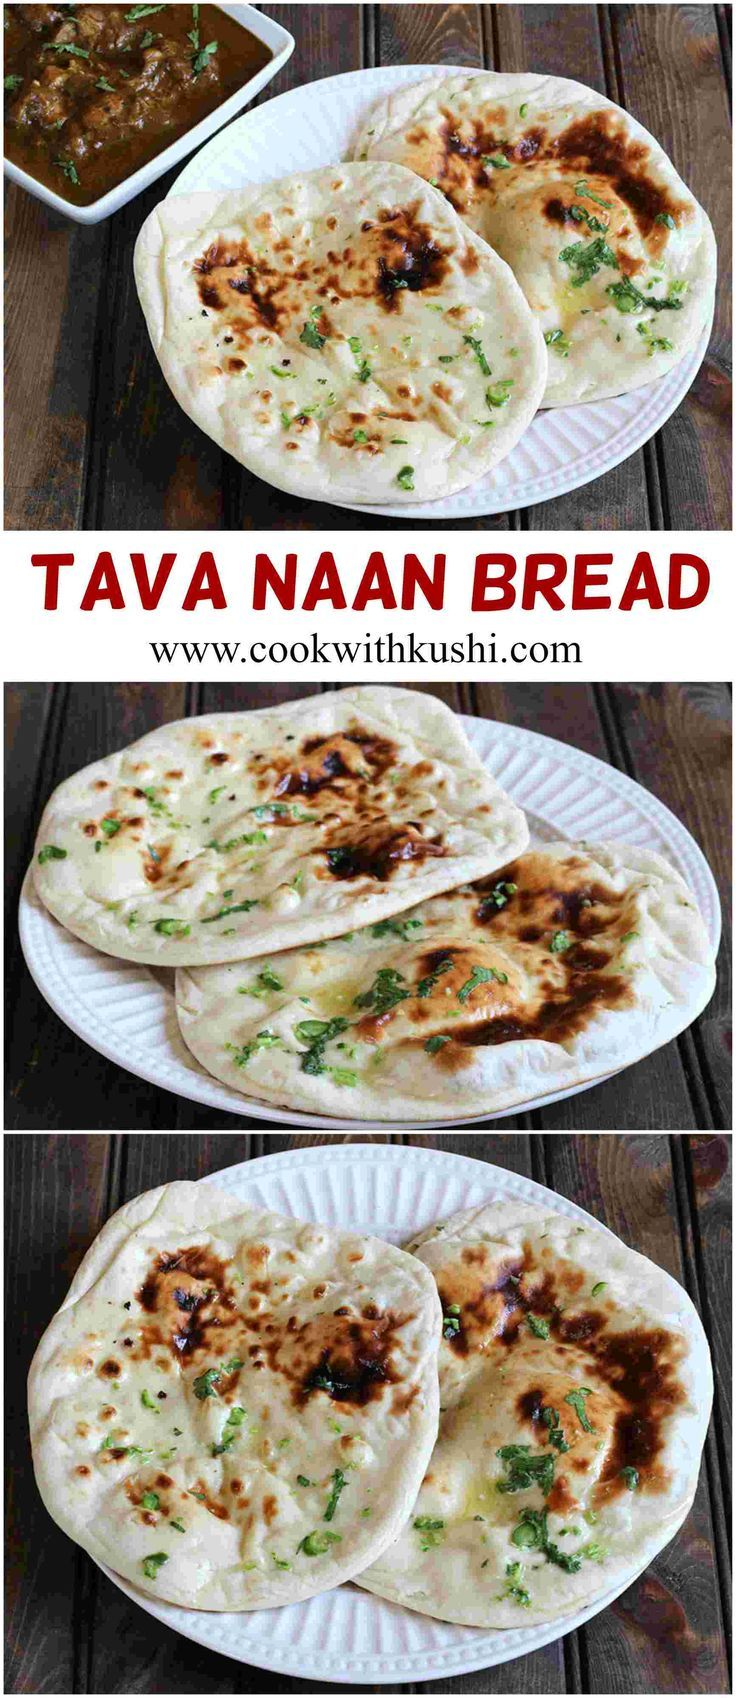 Tava Naan is a soft and chewy, delicious and super easy to make Indian flat bread recipe prepared on a cast iron skillet. #vegan #bread #breakfast #Lunch #dinner #naan @feedfeed @bhg